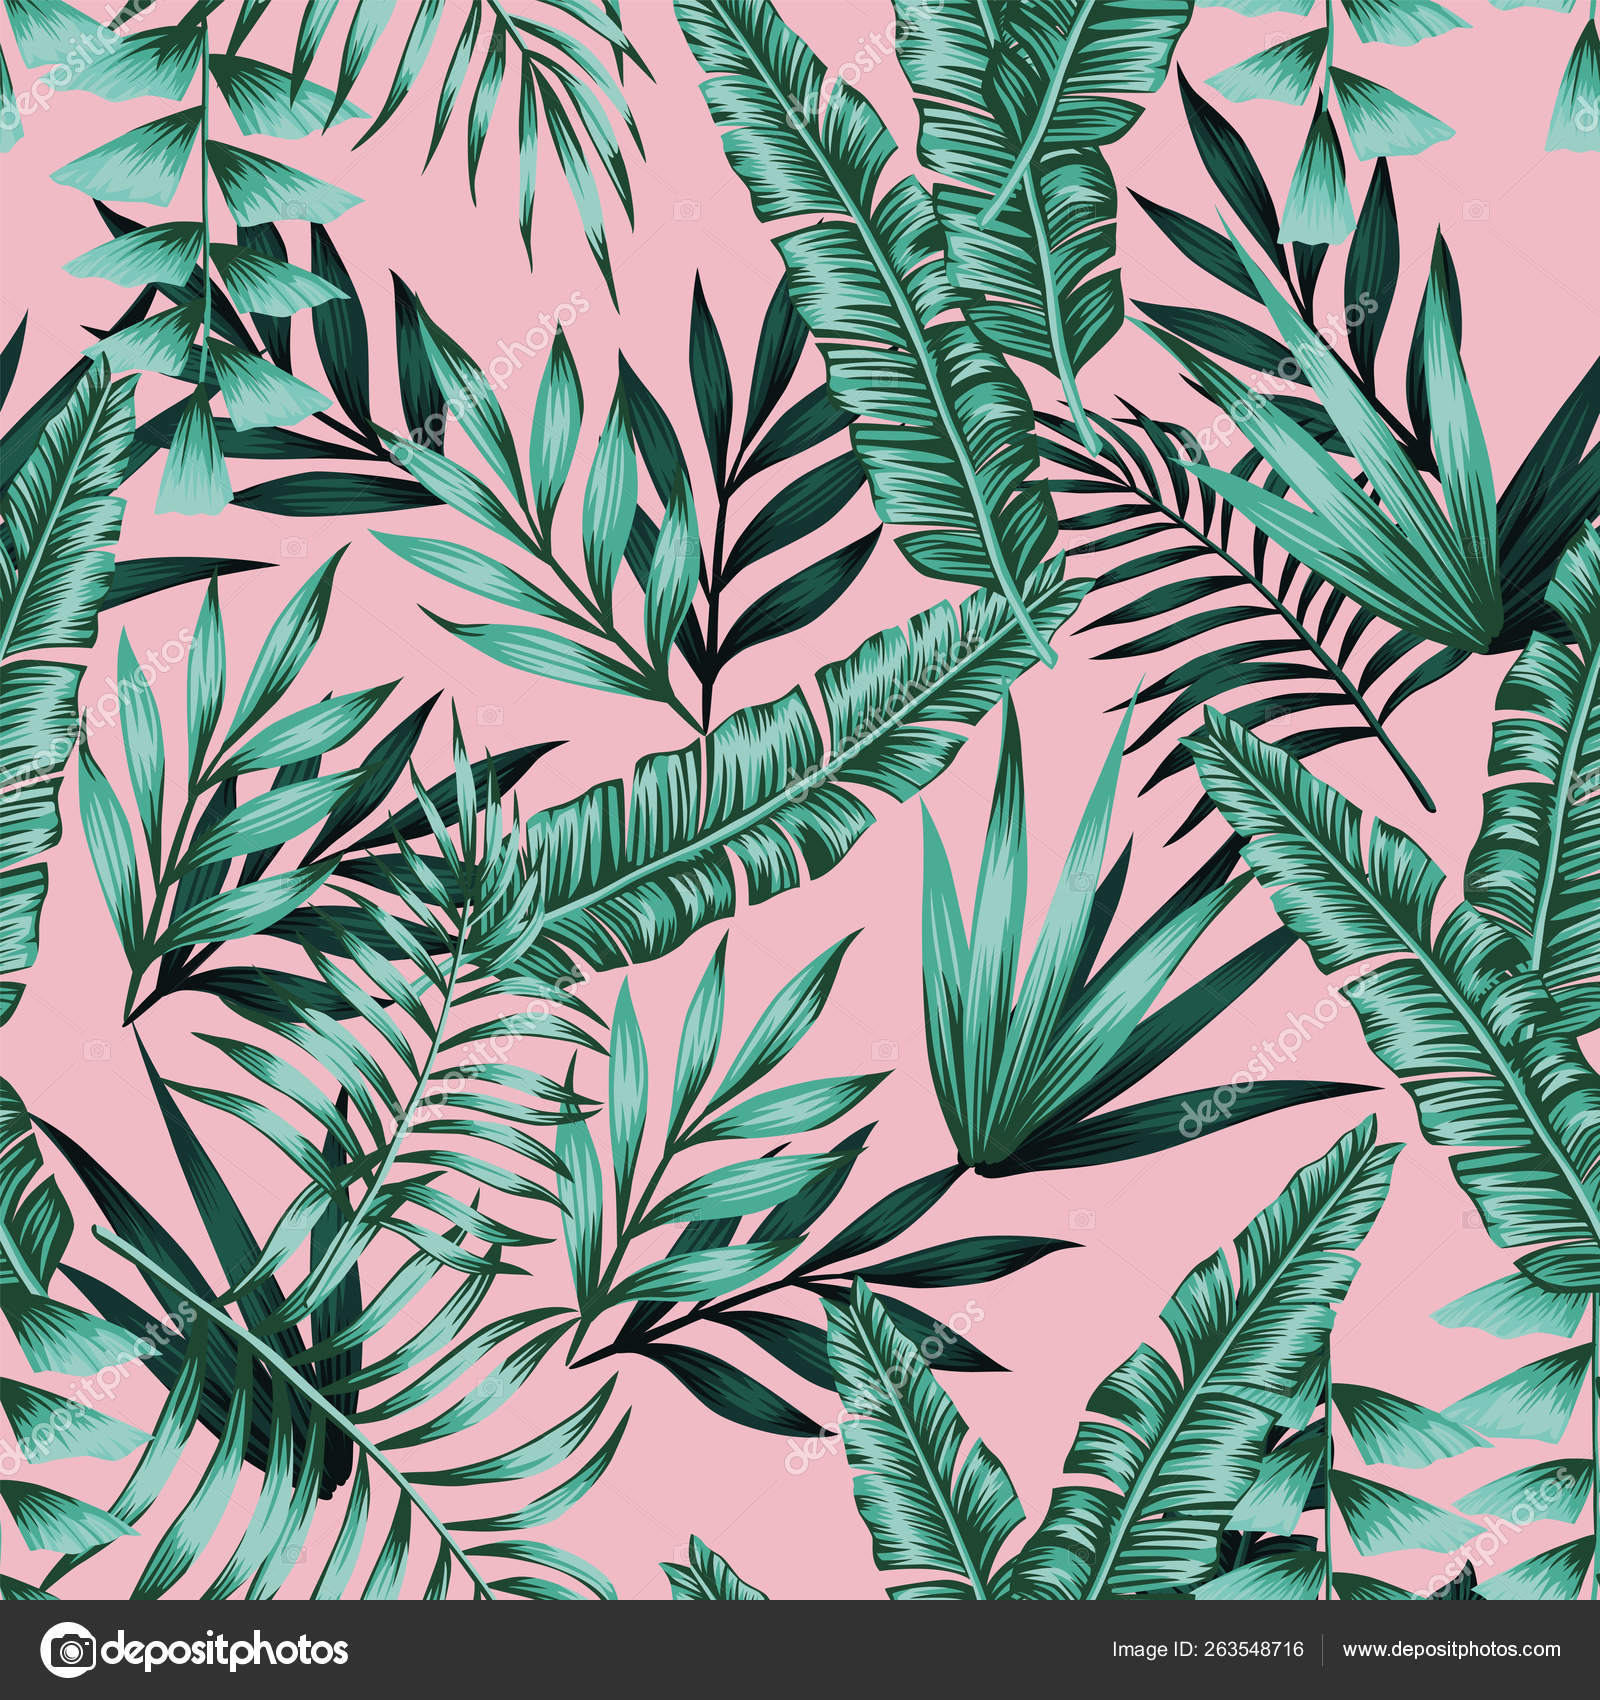 Exotic Green Tropical Leaves Seamless Pattern Pink Background Stock Vector C Berry2046 263548716 About 1% of these are cosmetic bags & cases, 0% are handbags. exotic green tropical leaves seamless pattern pink background stock vector c berry2046 263548716